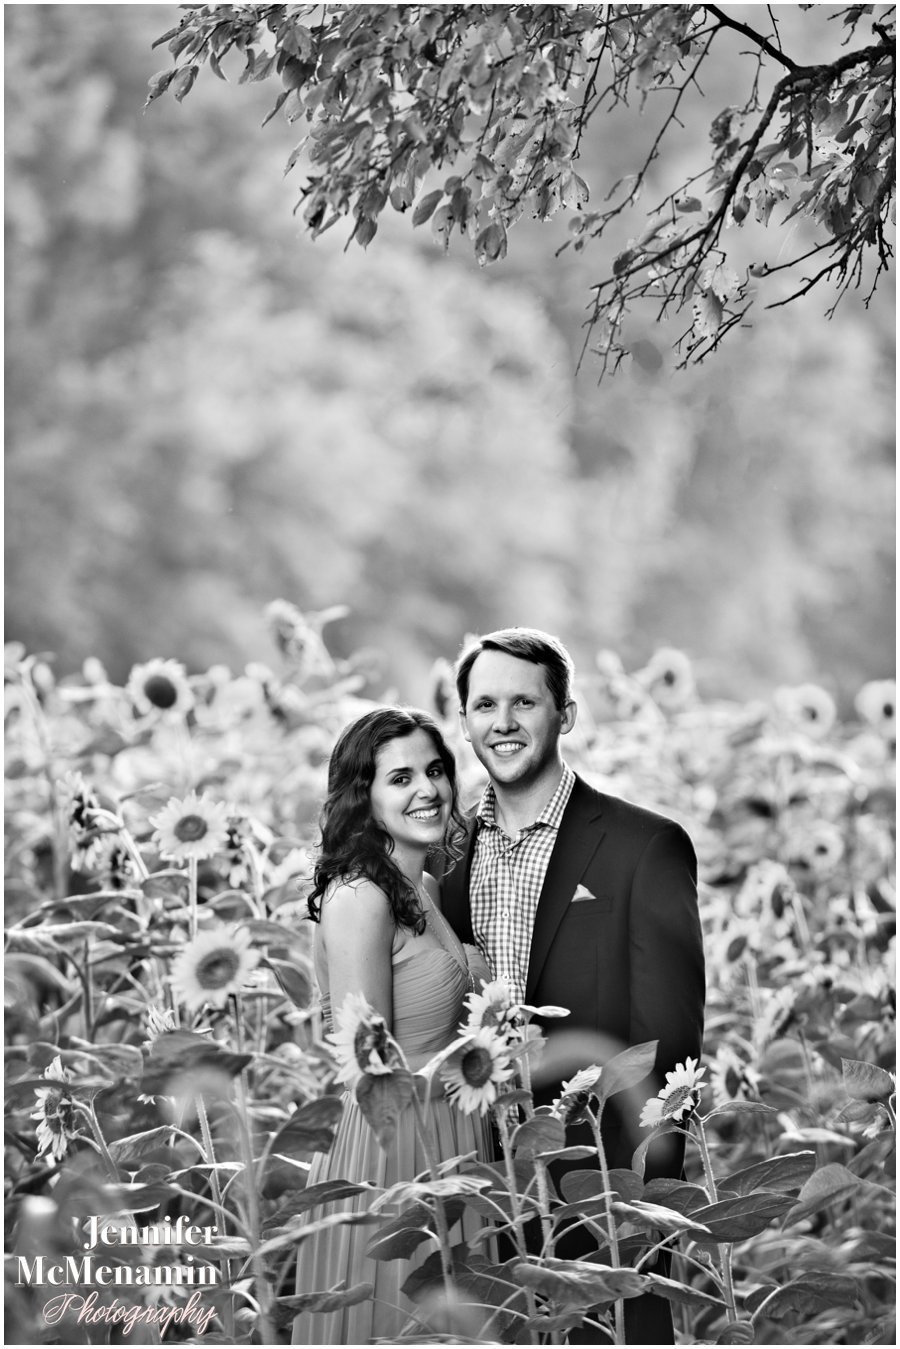 13-BlumWilliams_0311bw-0068_JenniferMcMenaminPhotography_sunflowers_engagement-photos_DC_Baltimore